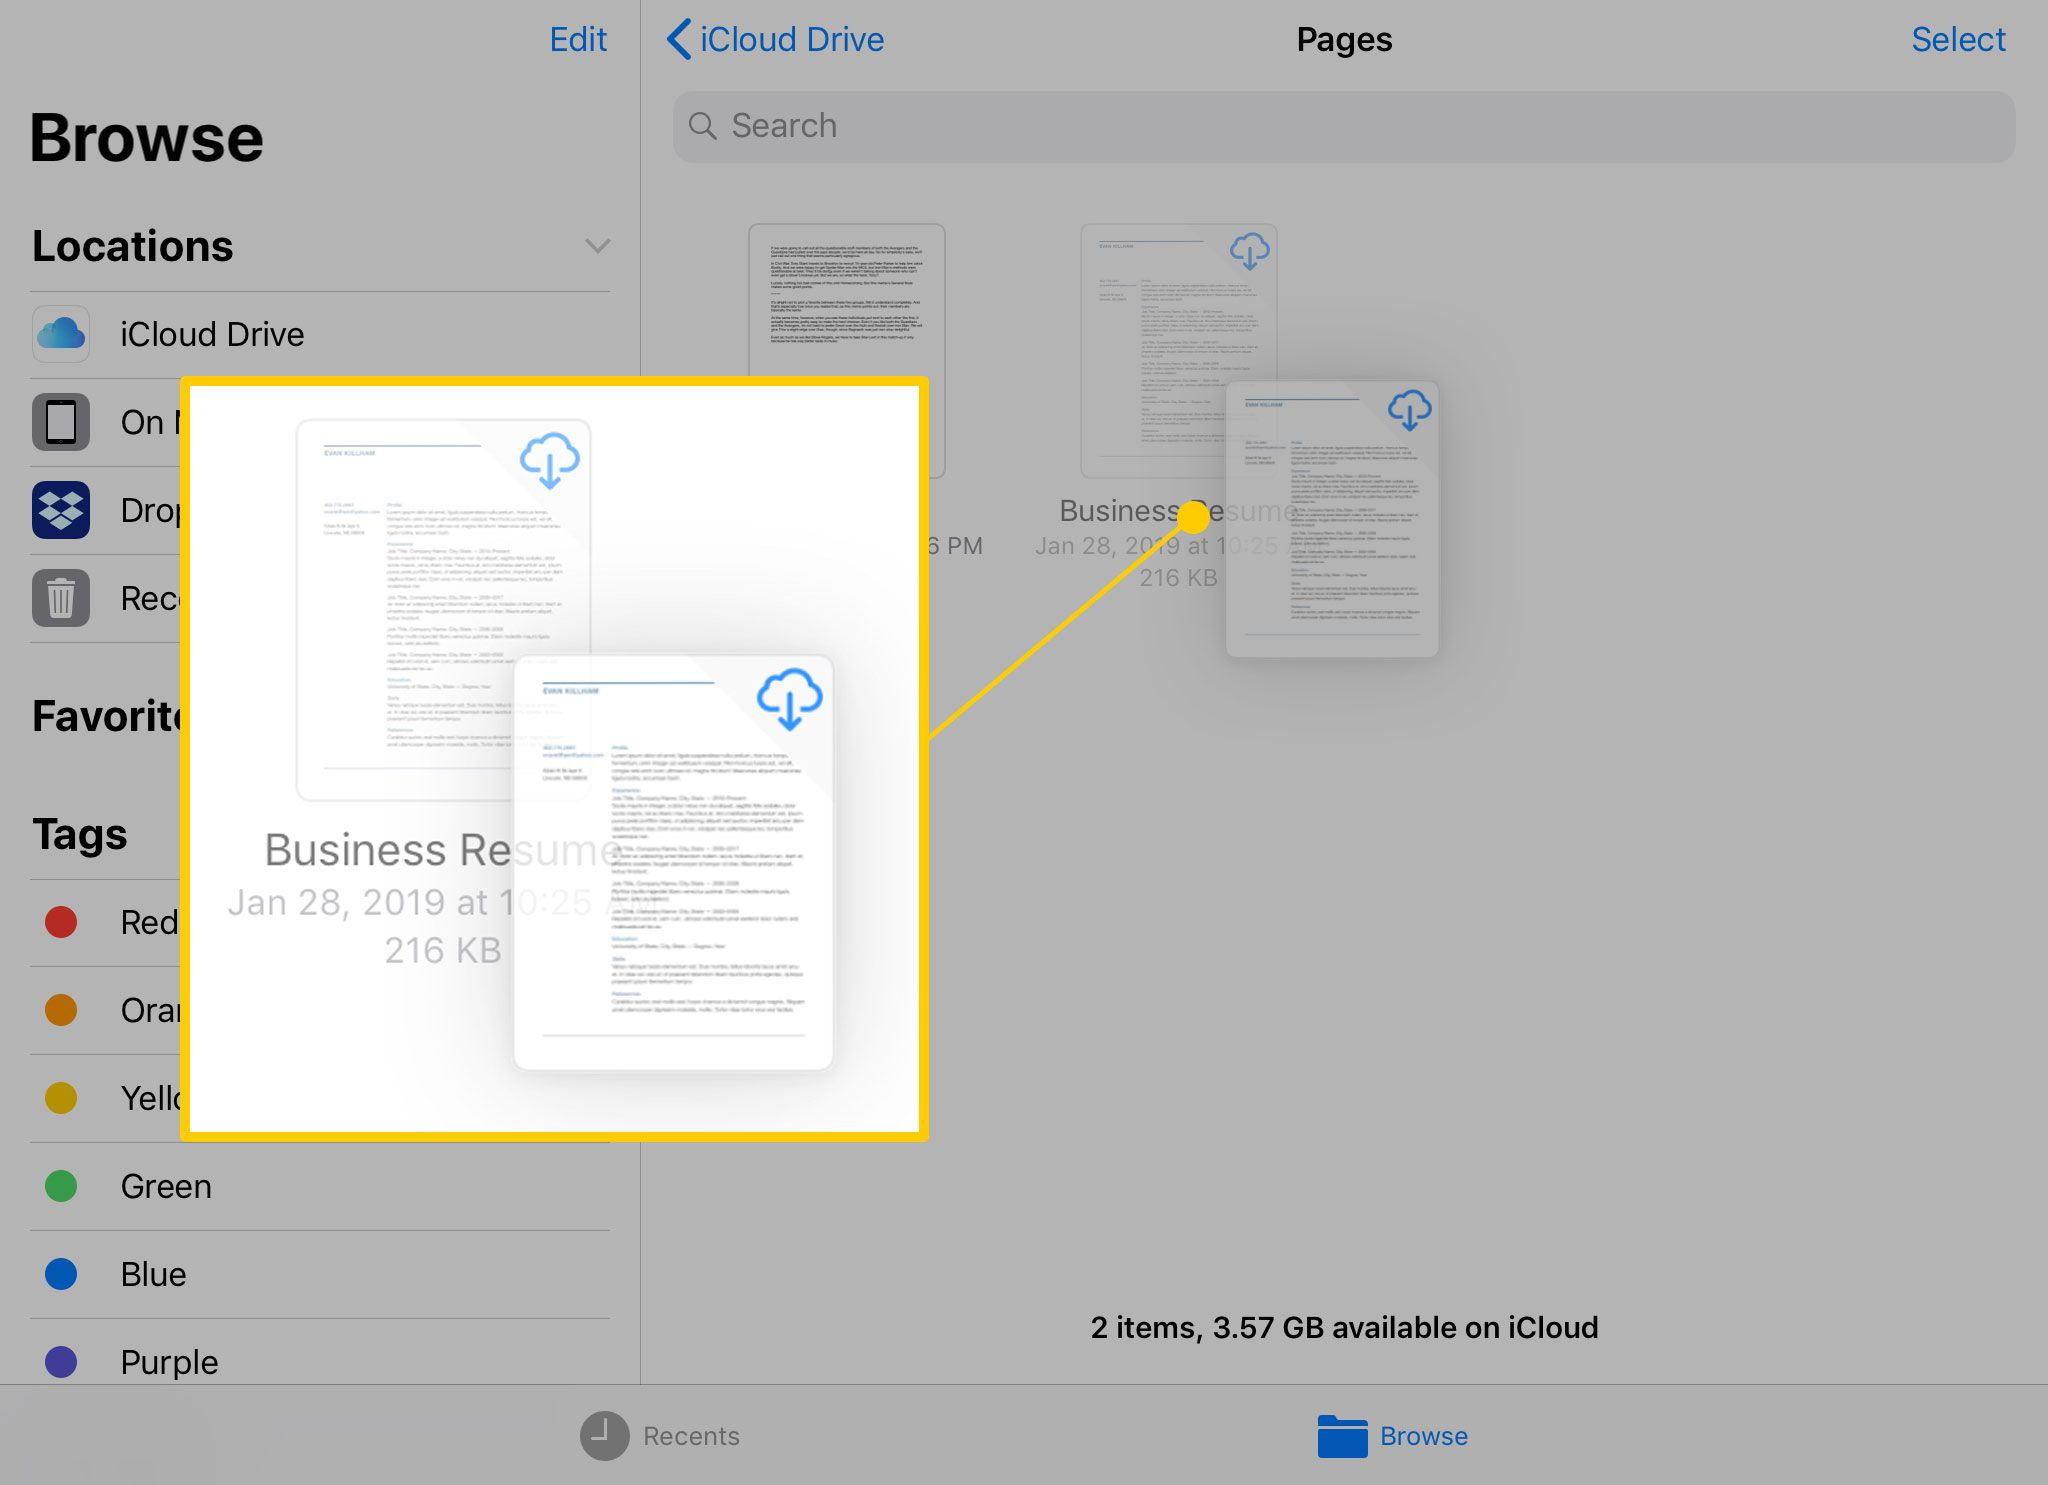 How to Manage Files on Your iPhone or iPad